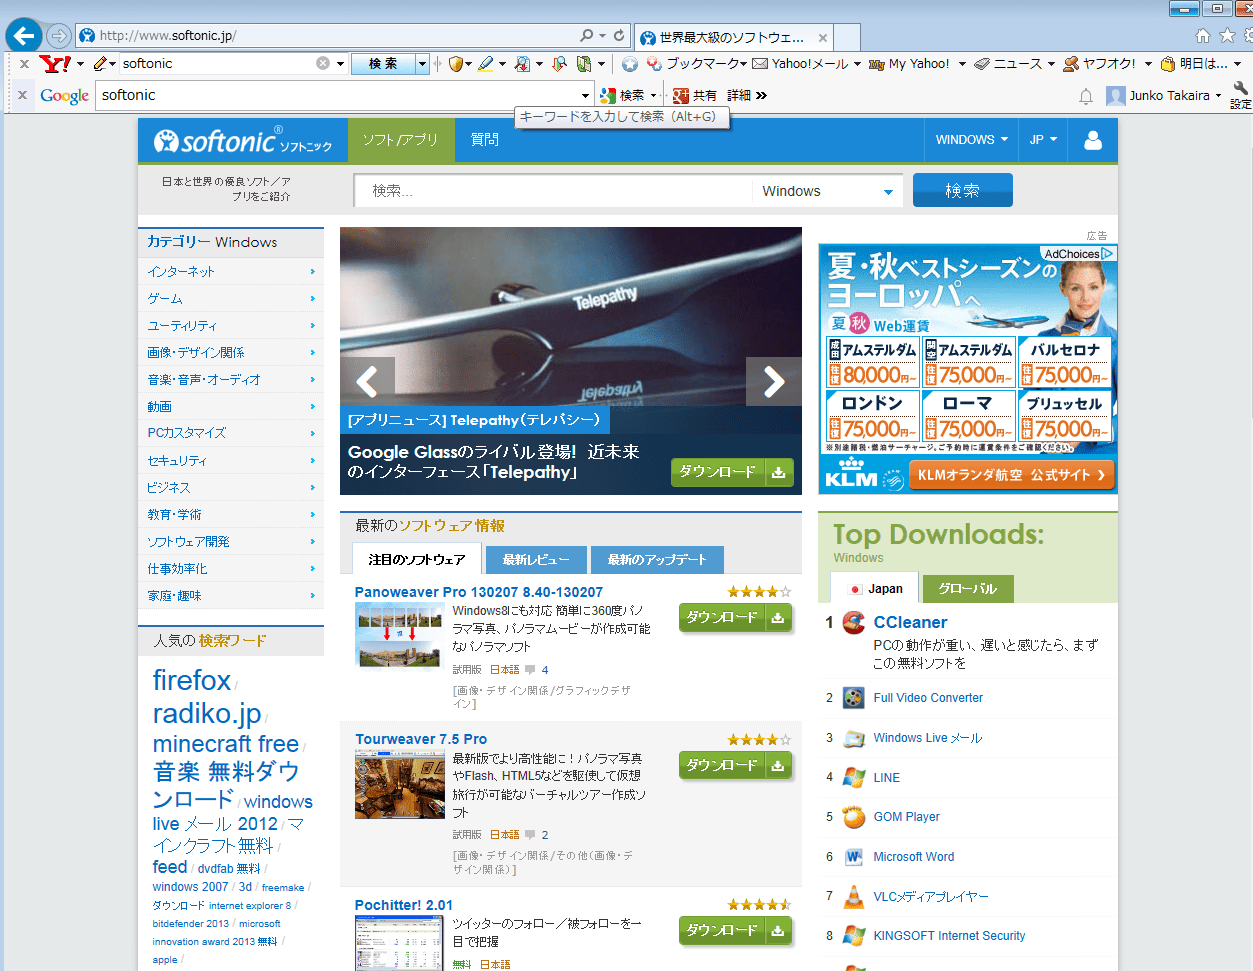 Internet Explorer 11 Developer Preview (64 bits)